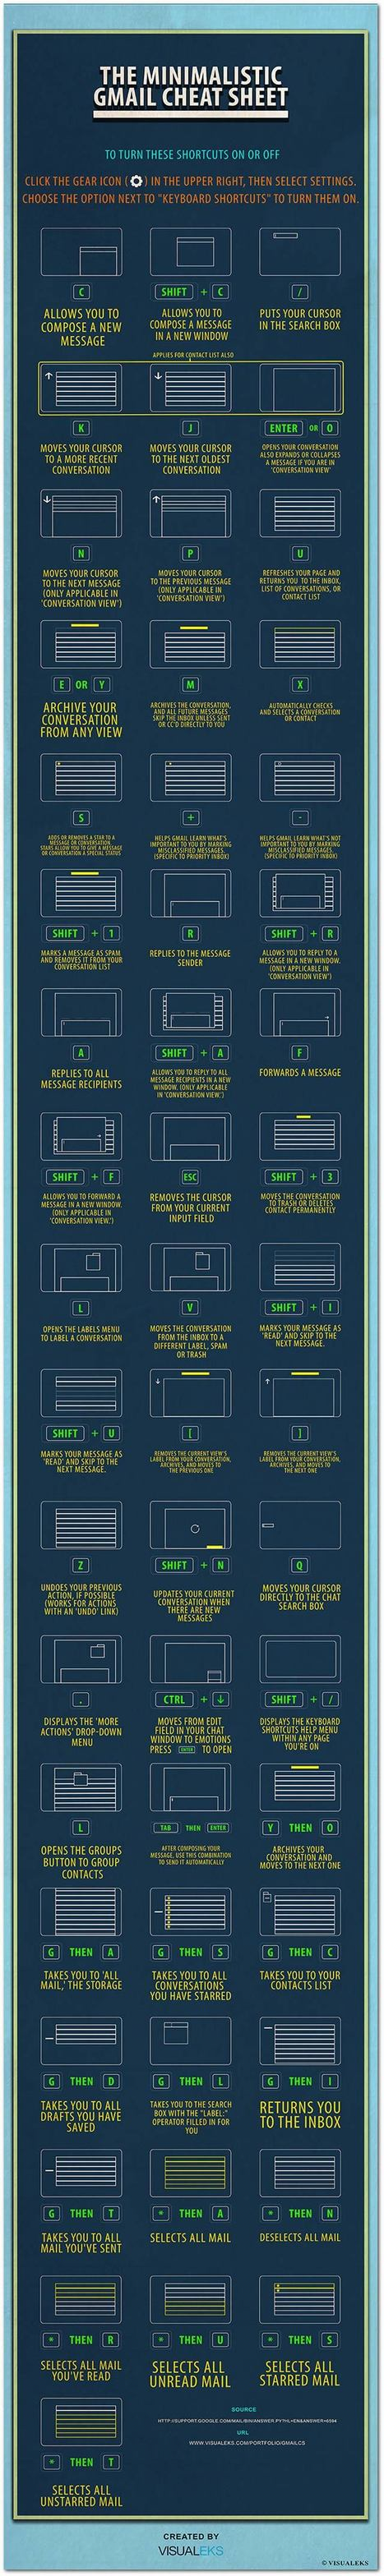 52 Gmail Shortcuts You Should Know About - Infographic | iPad in the Jaye's Classroom | Scoop.it